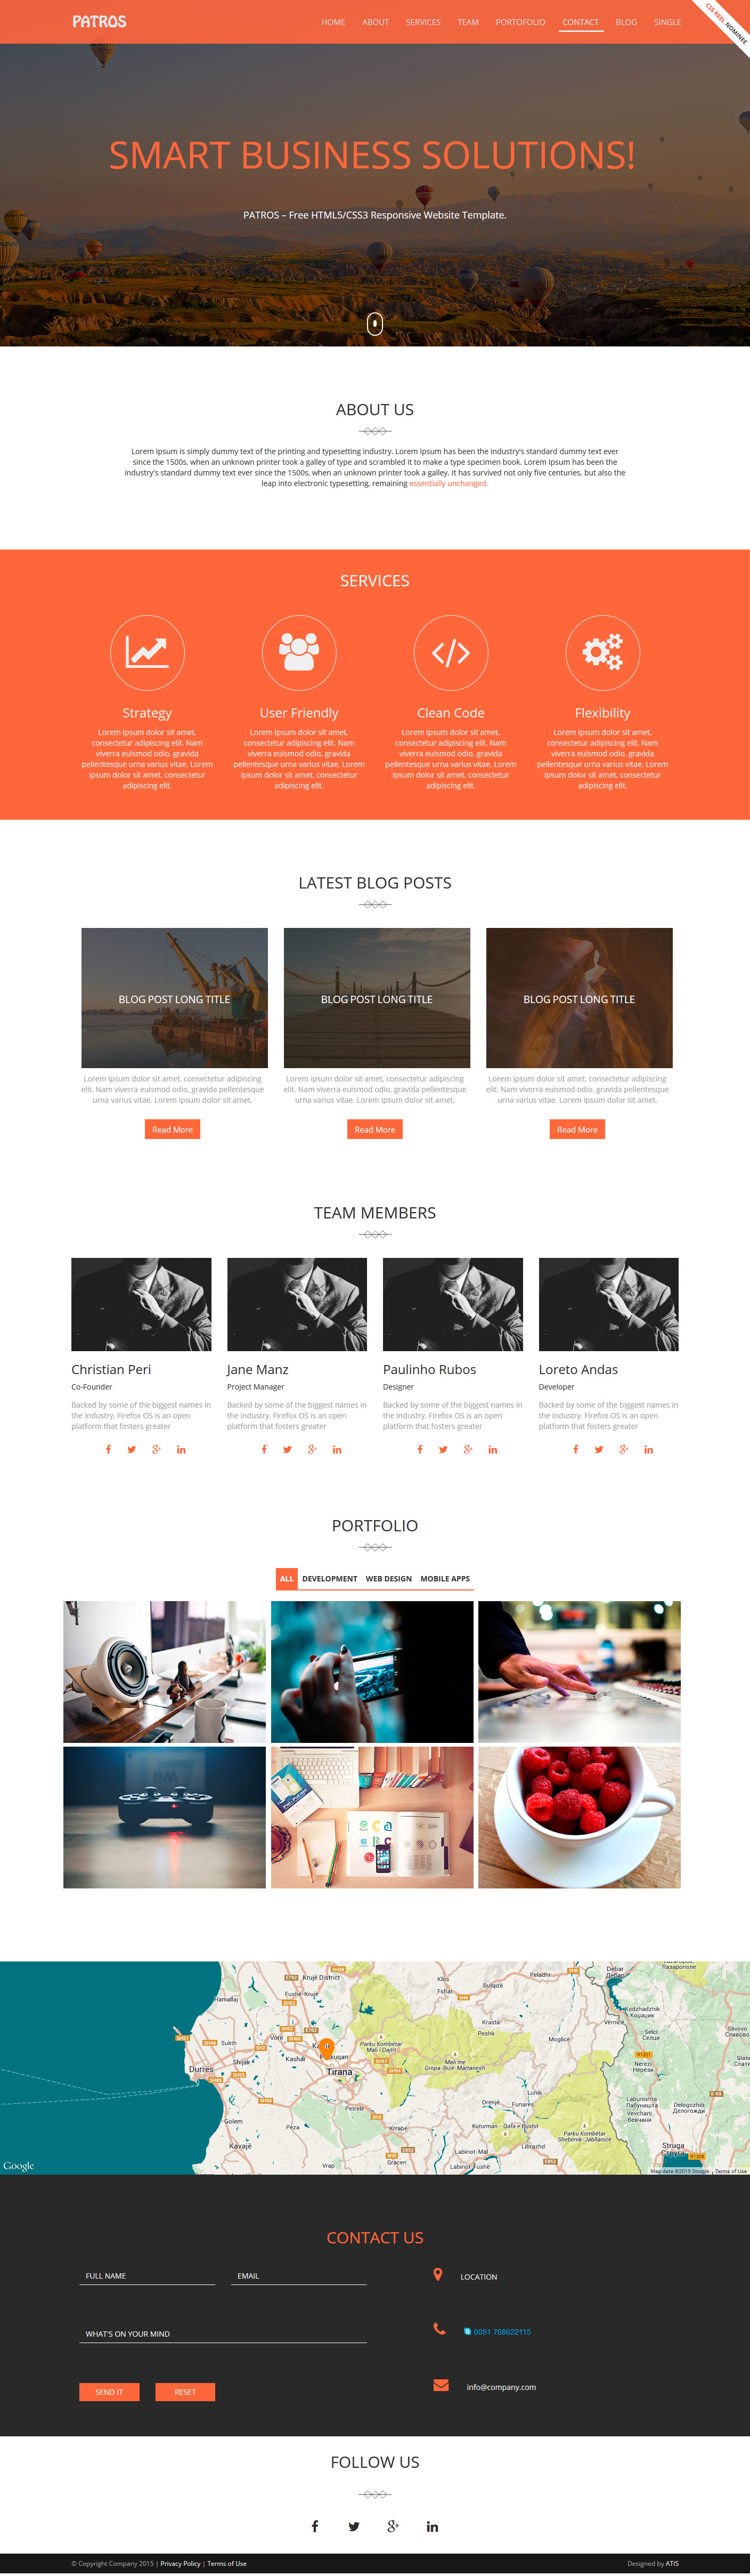 Free Download Patros A Free HTMLCSS Responsive Website Template - Responsive website templates free download html5 with css3